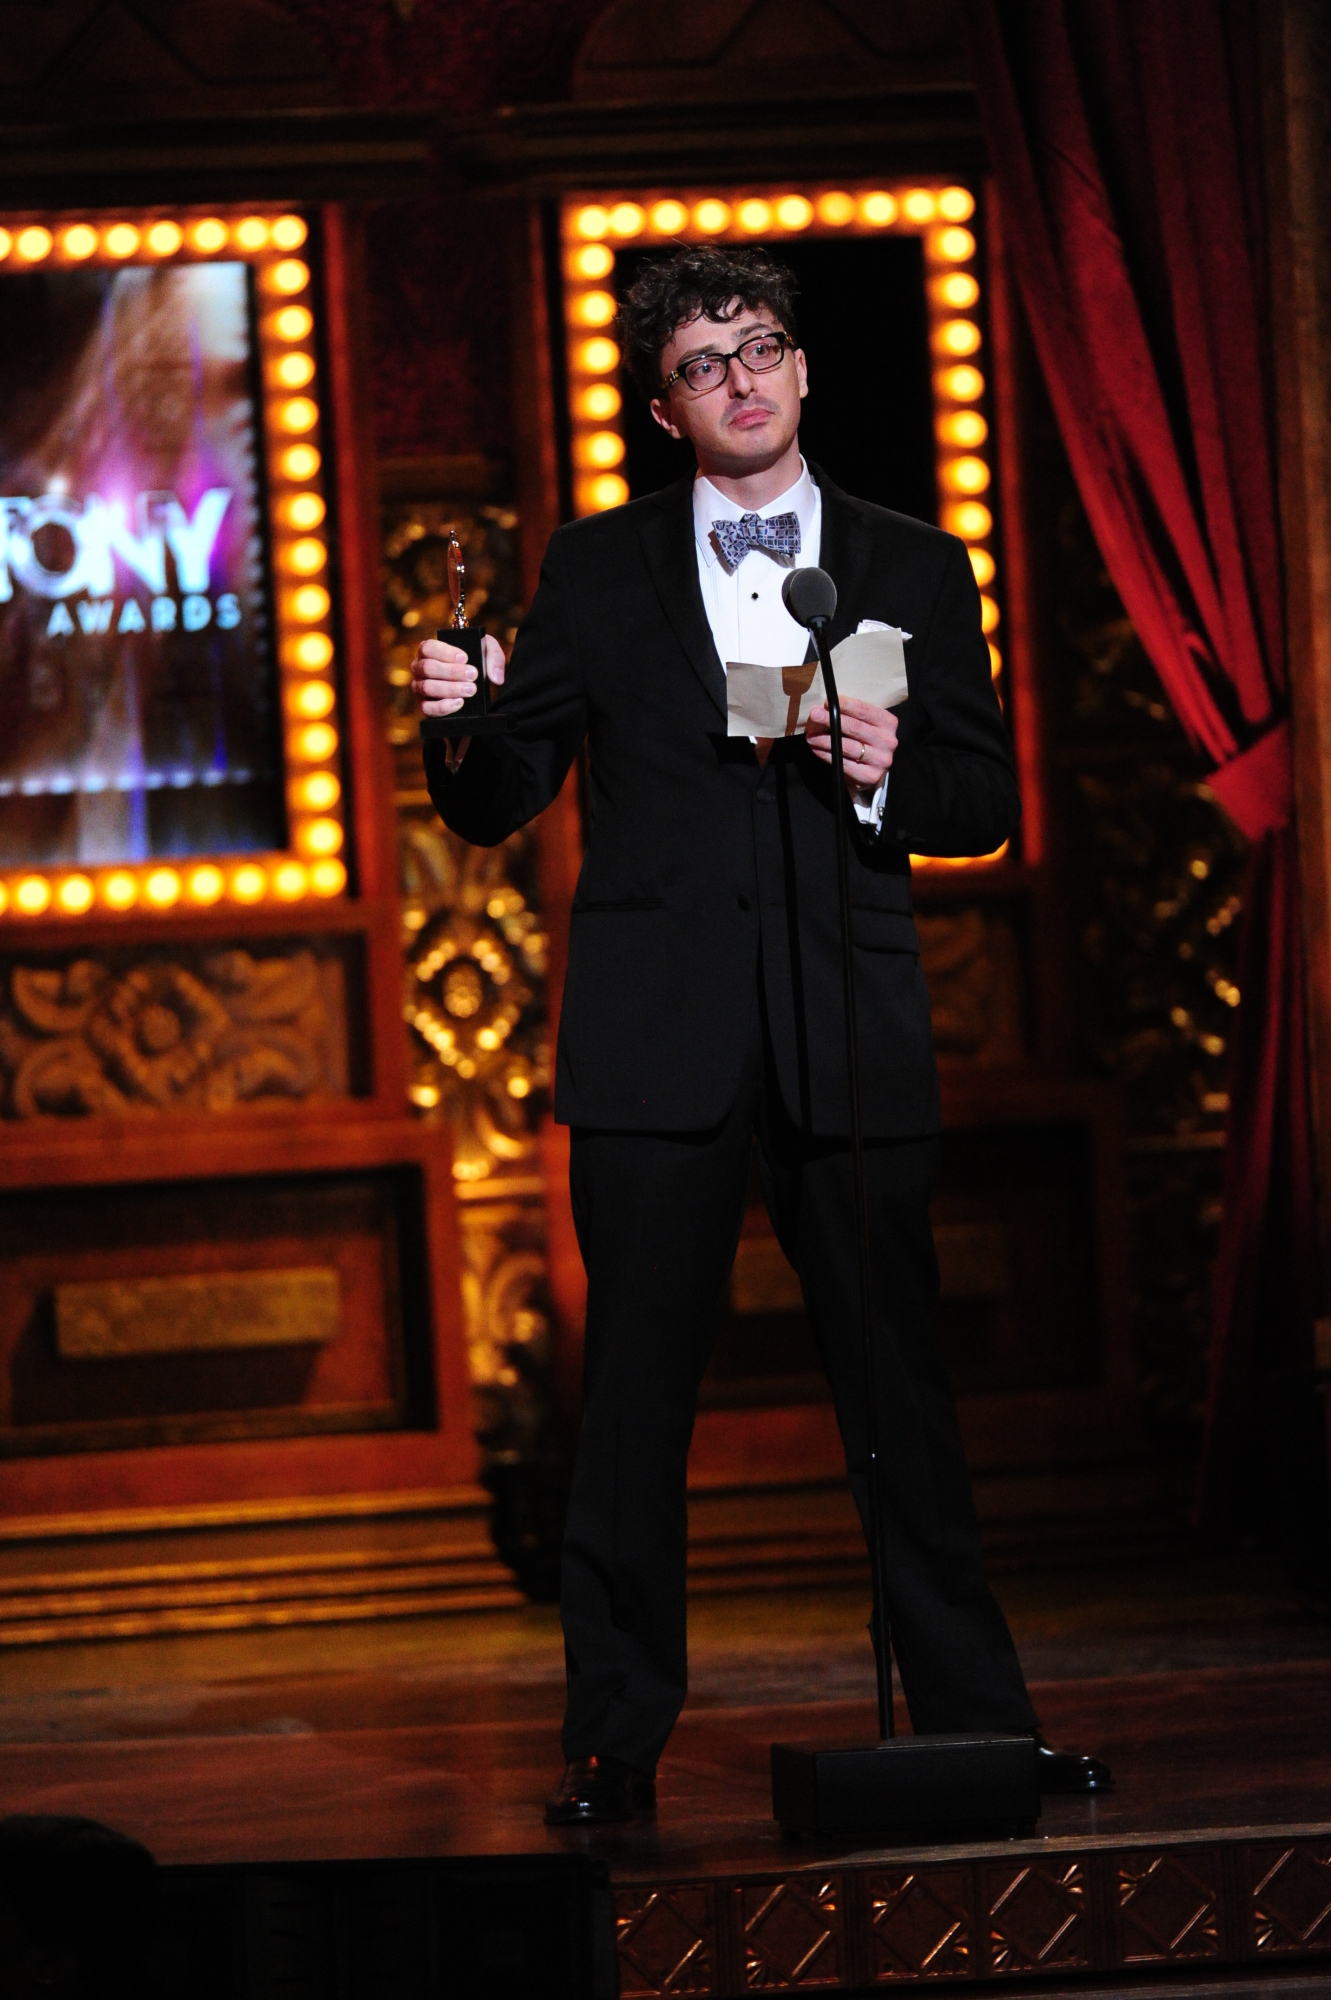 winner Best Scenic Design of a Play Beowulf Boritt for Act One - 2014 Tony Awards